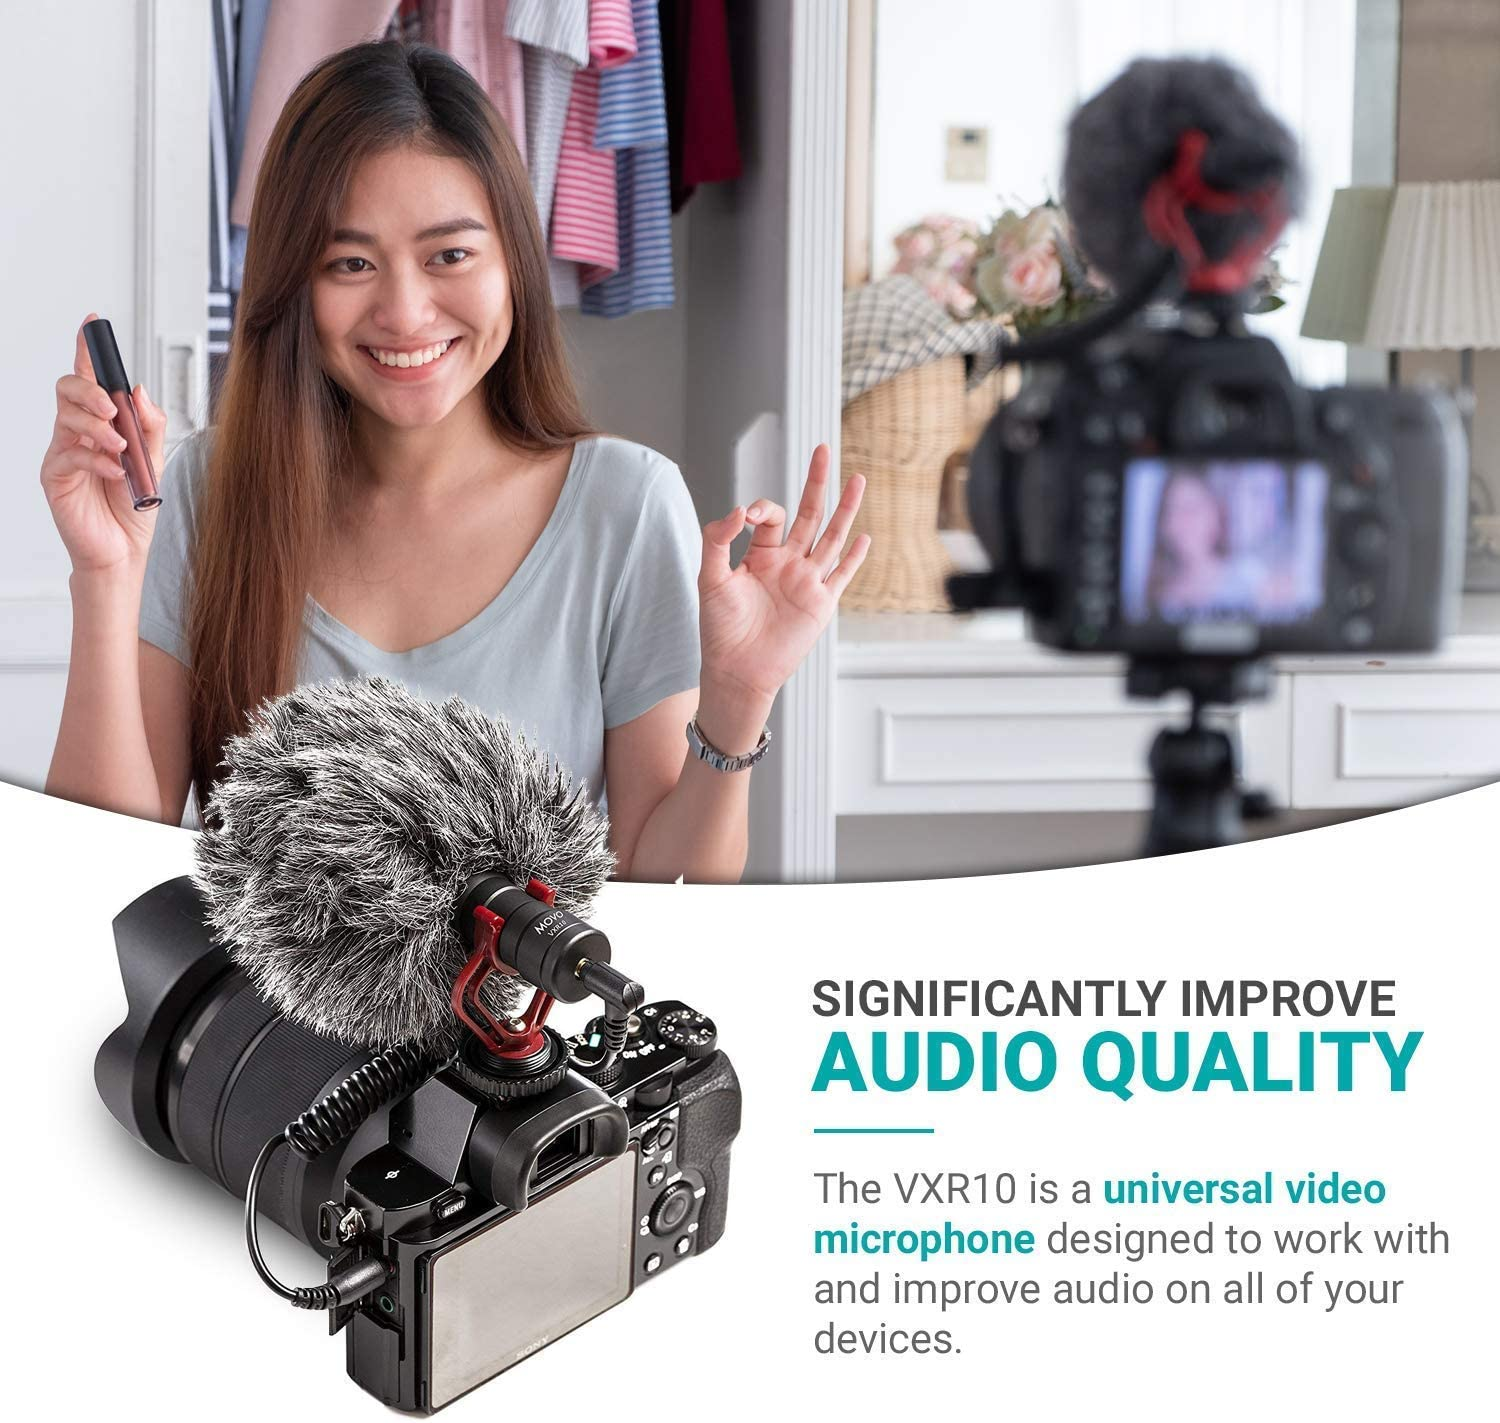 6S Compatible with iPhone 11 11 Pro Case Deadcat Windscreen Movo VXR10 Universal Video Microphone with Lightning Dongle Adapter Includes Shock Mount 7 XR iPad and More 5S X 5 XS 8 6